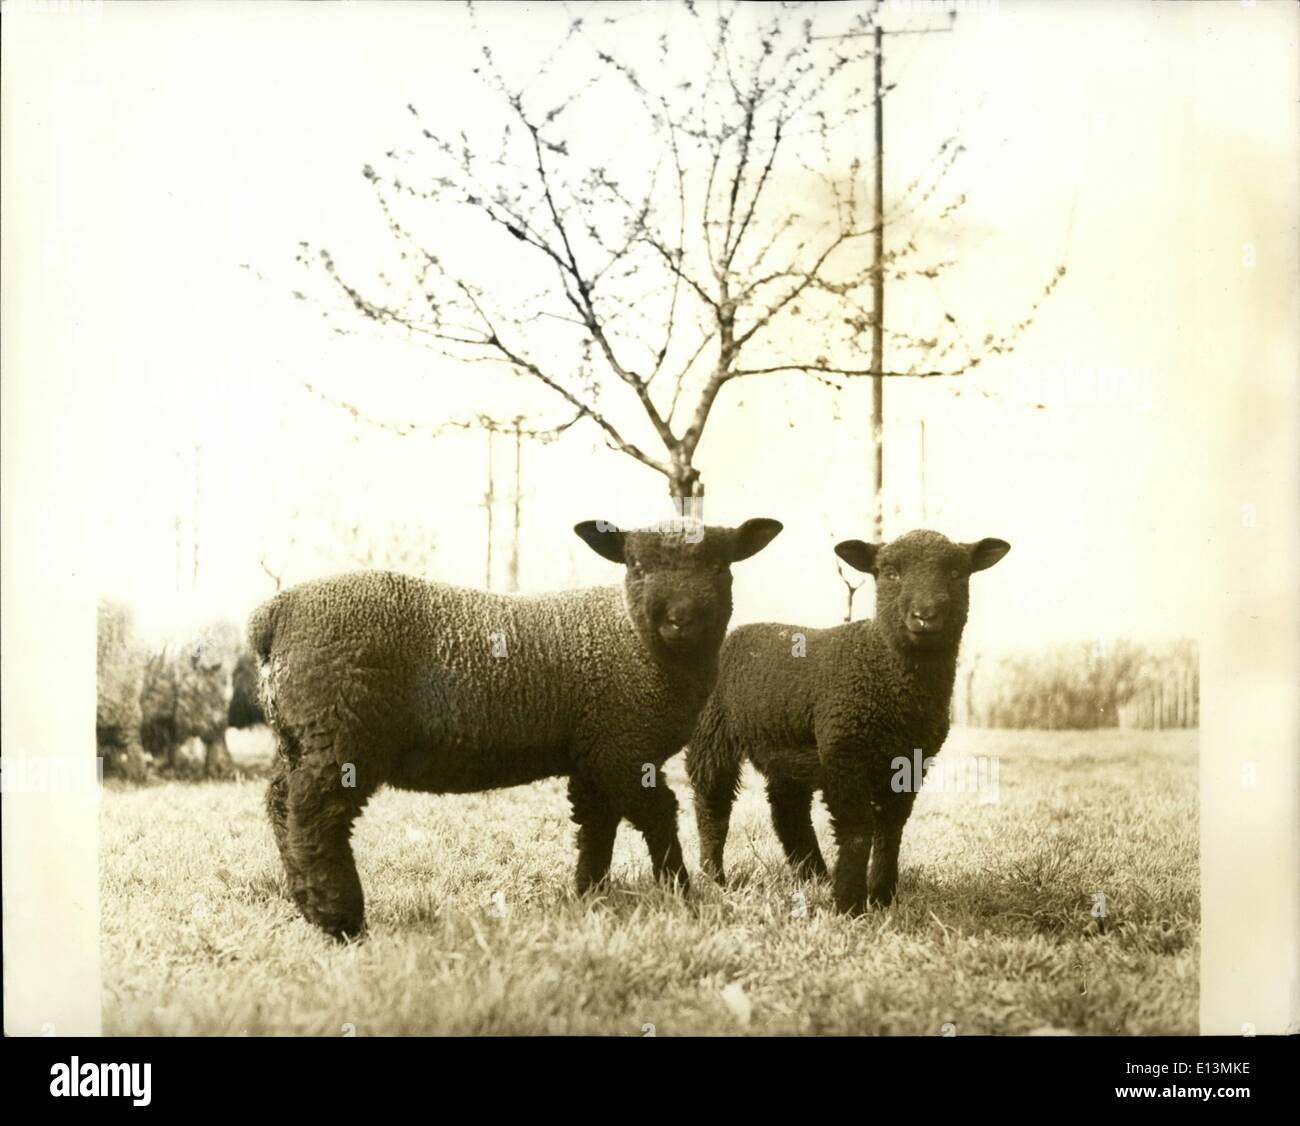 Mar. 02, 2012 - A Posed Shot: These two black Spring lambs make a pretty picture as they pose for the photographer. - Stock Image